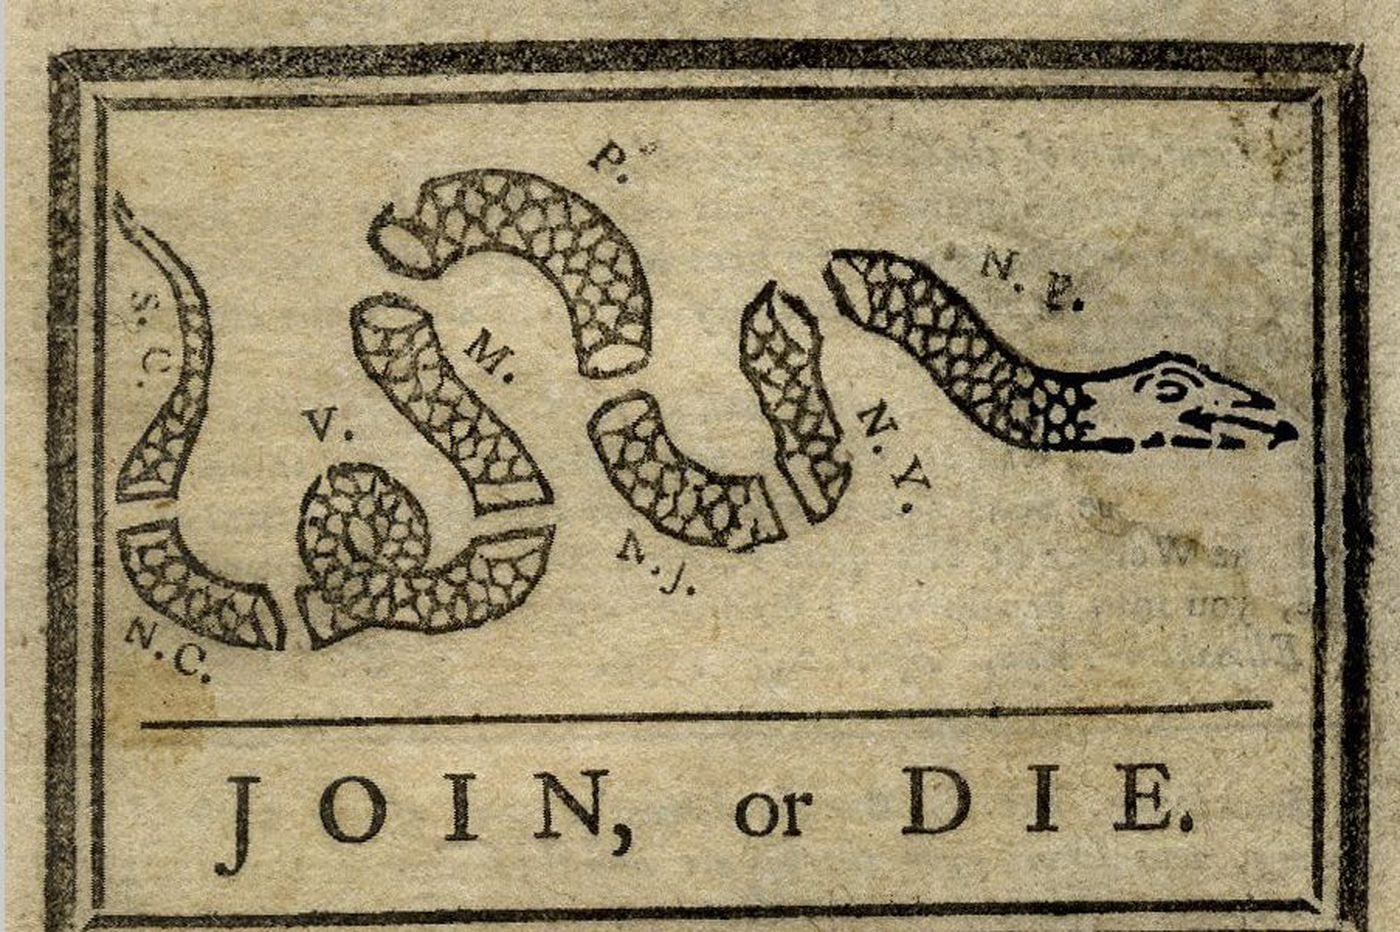 Copy of Ben Franklin's newspaper with 'Join or Die' political cartoon sells for 50K at auction